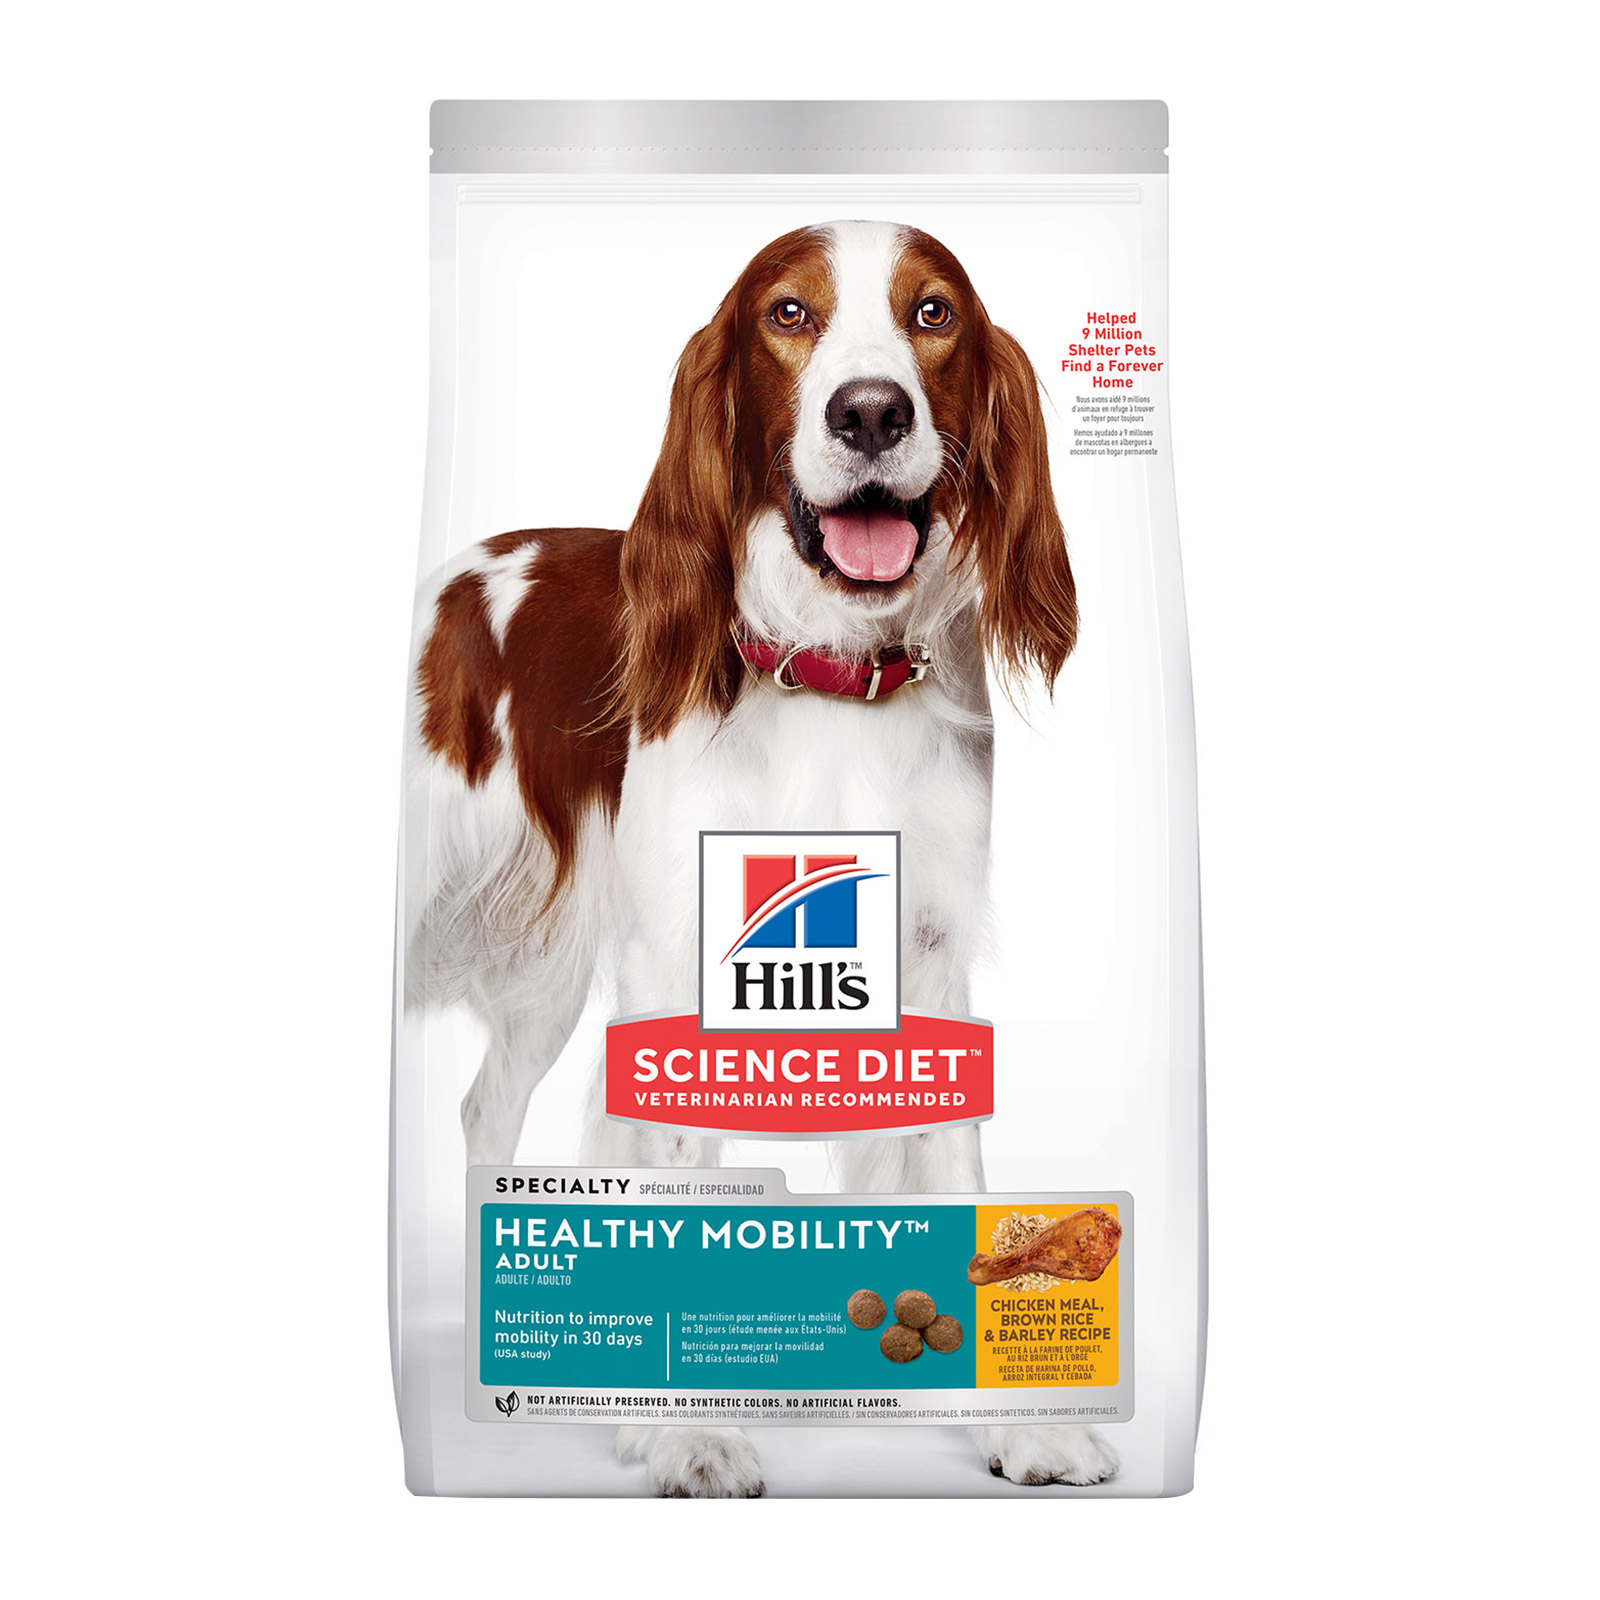 Hill's Science Diet Adult Healthy Mobility Chicken, Rice & Barley Dry Dog Food